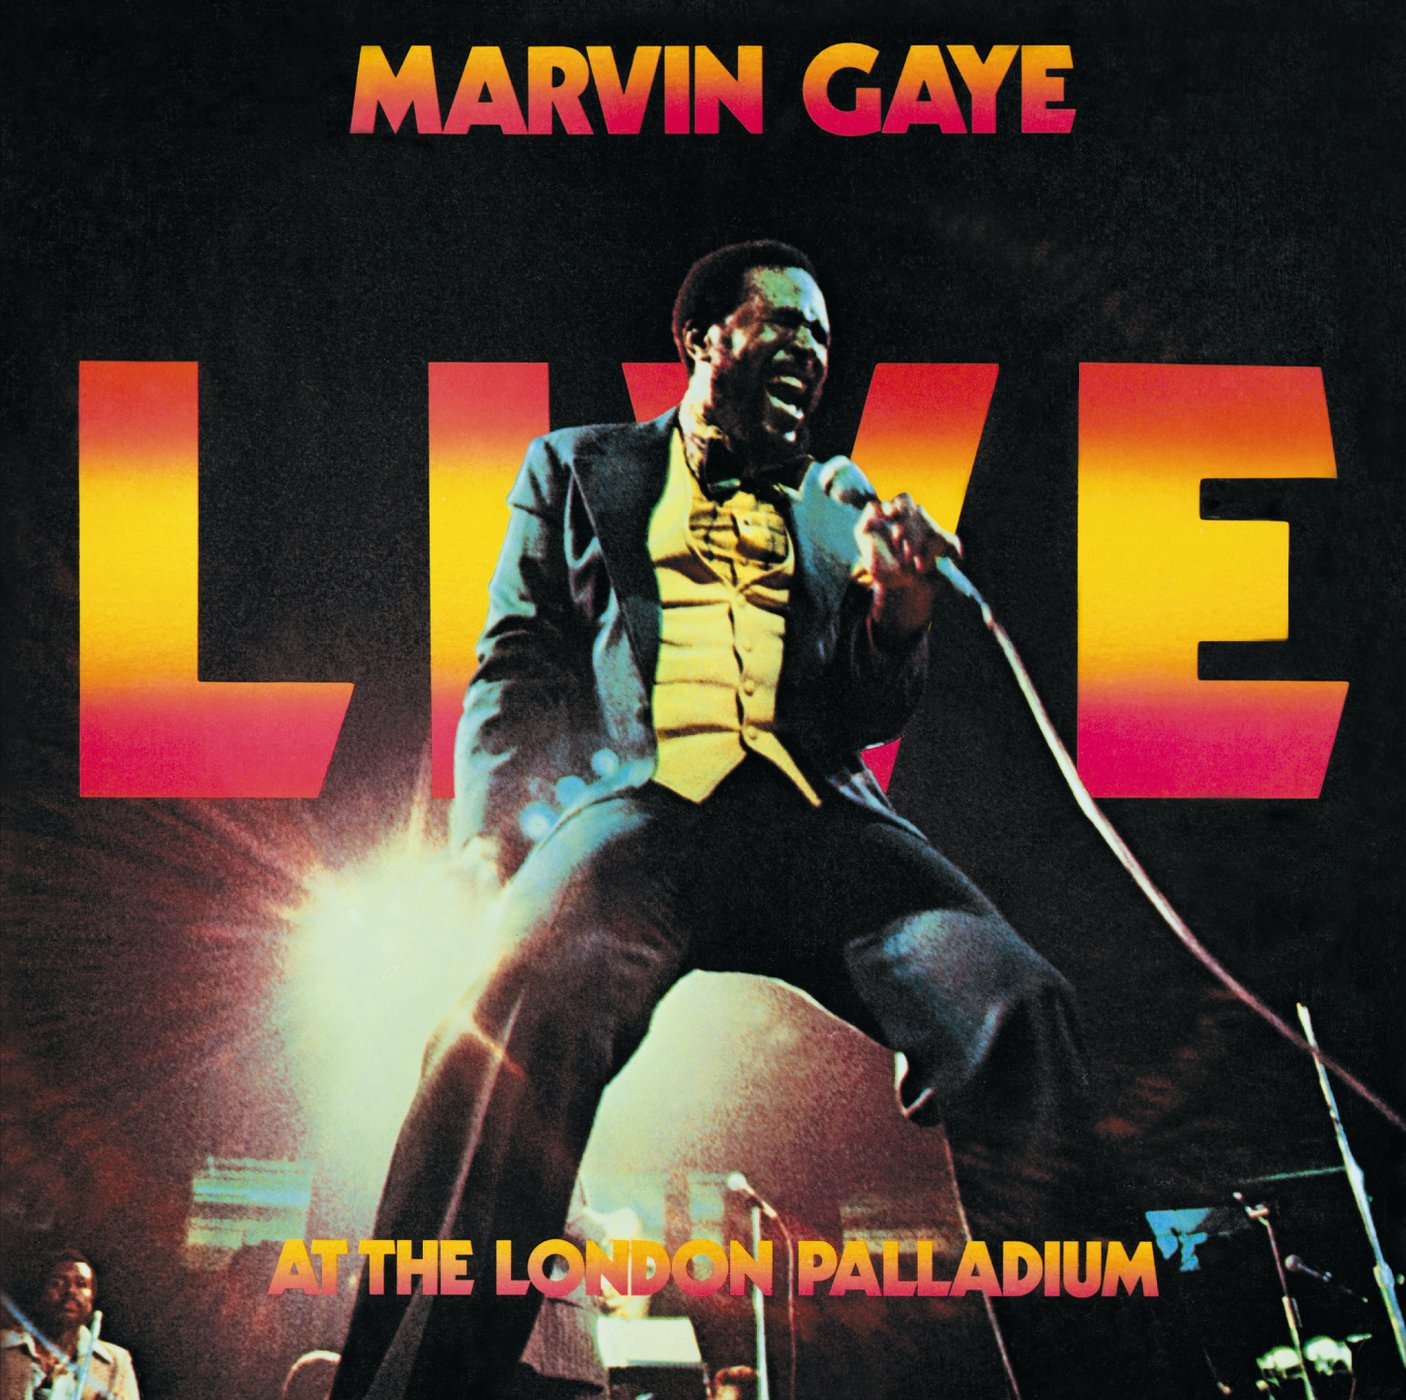 CD : Marvin Gaye - Live at the London Palladium